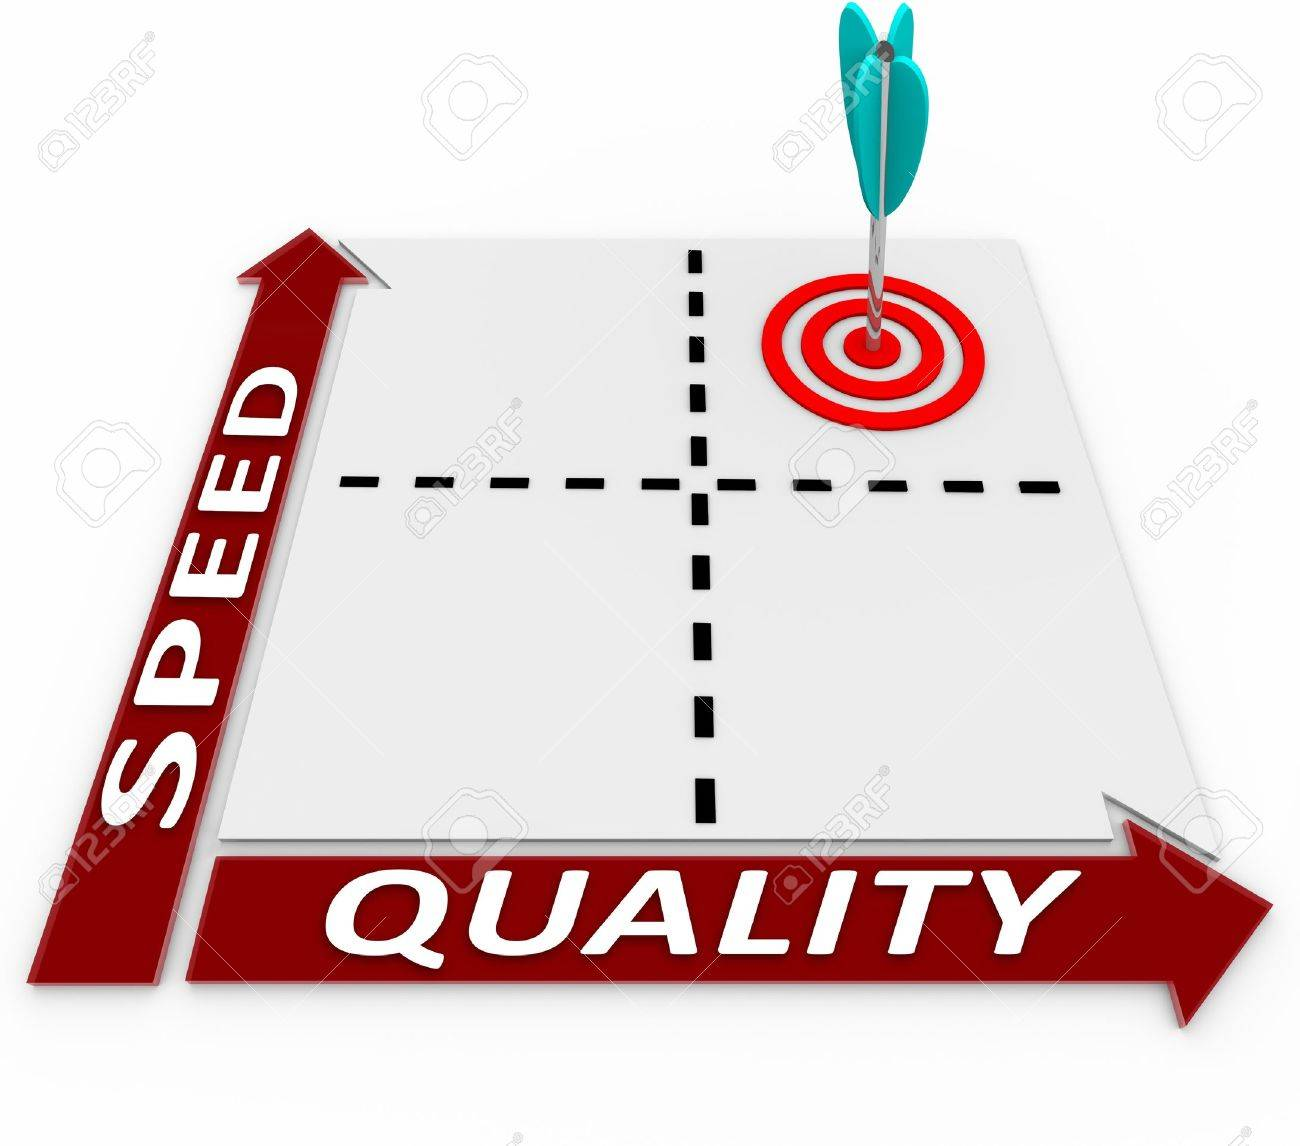 The best way to produce goods is to do it with great speed and quality, getting products to market most efficiently and at an attractive price for consumers - 10085896